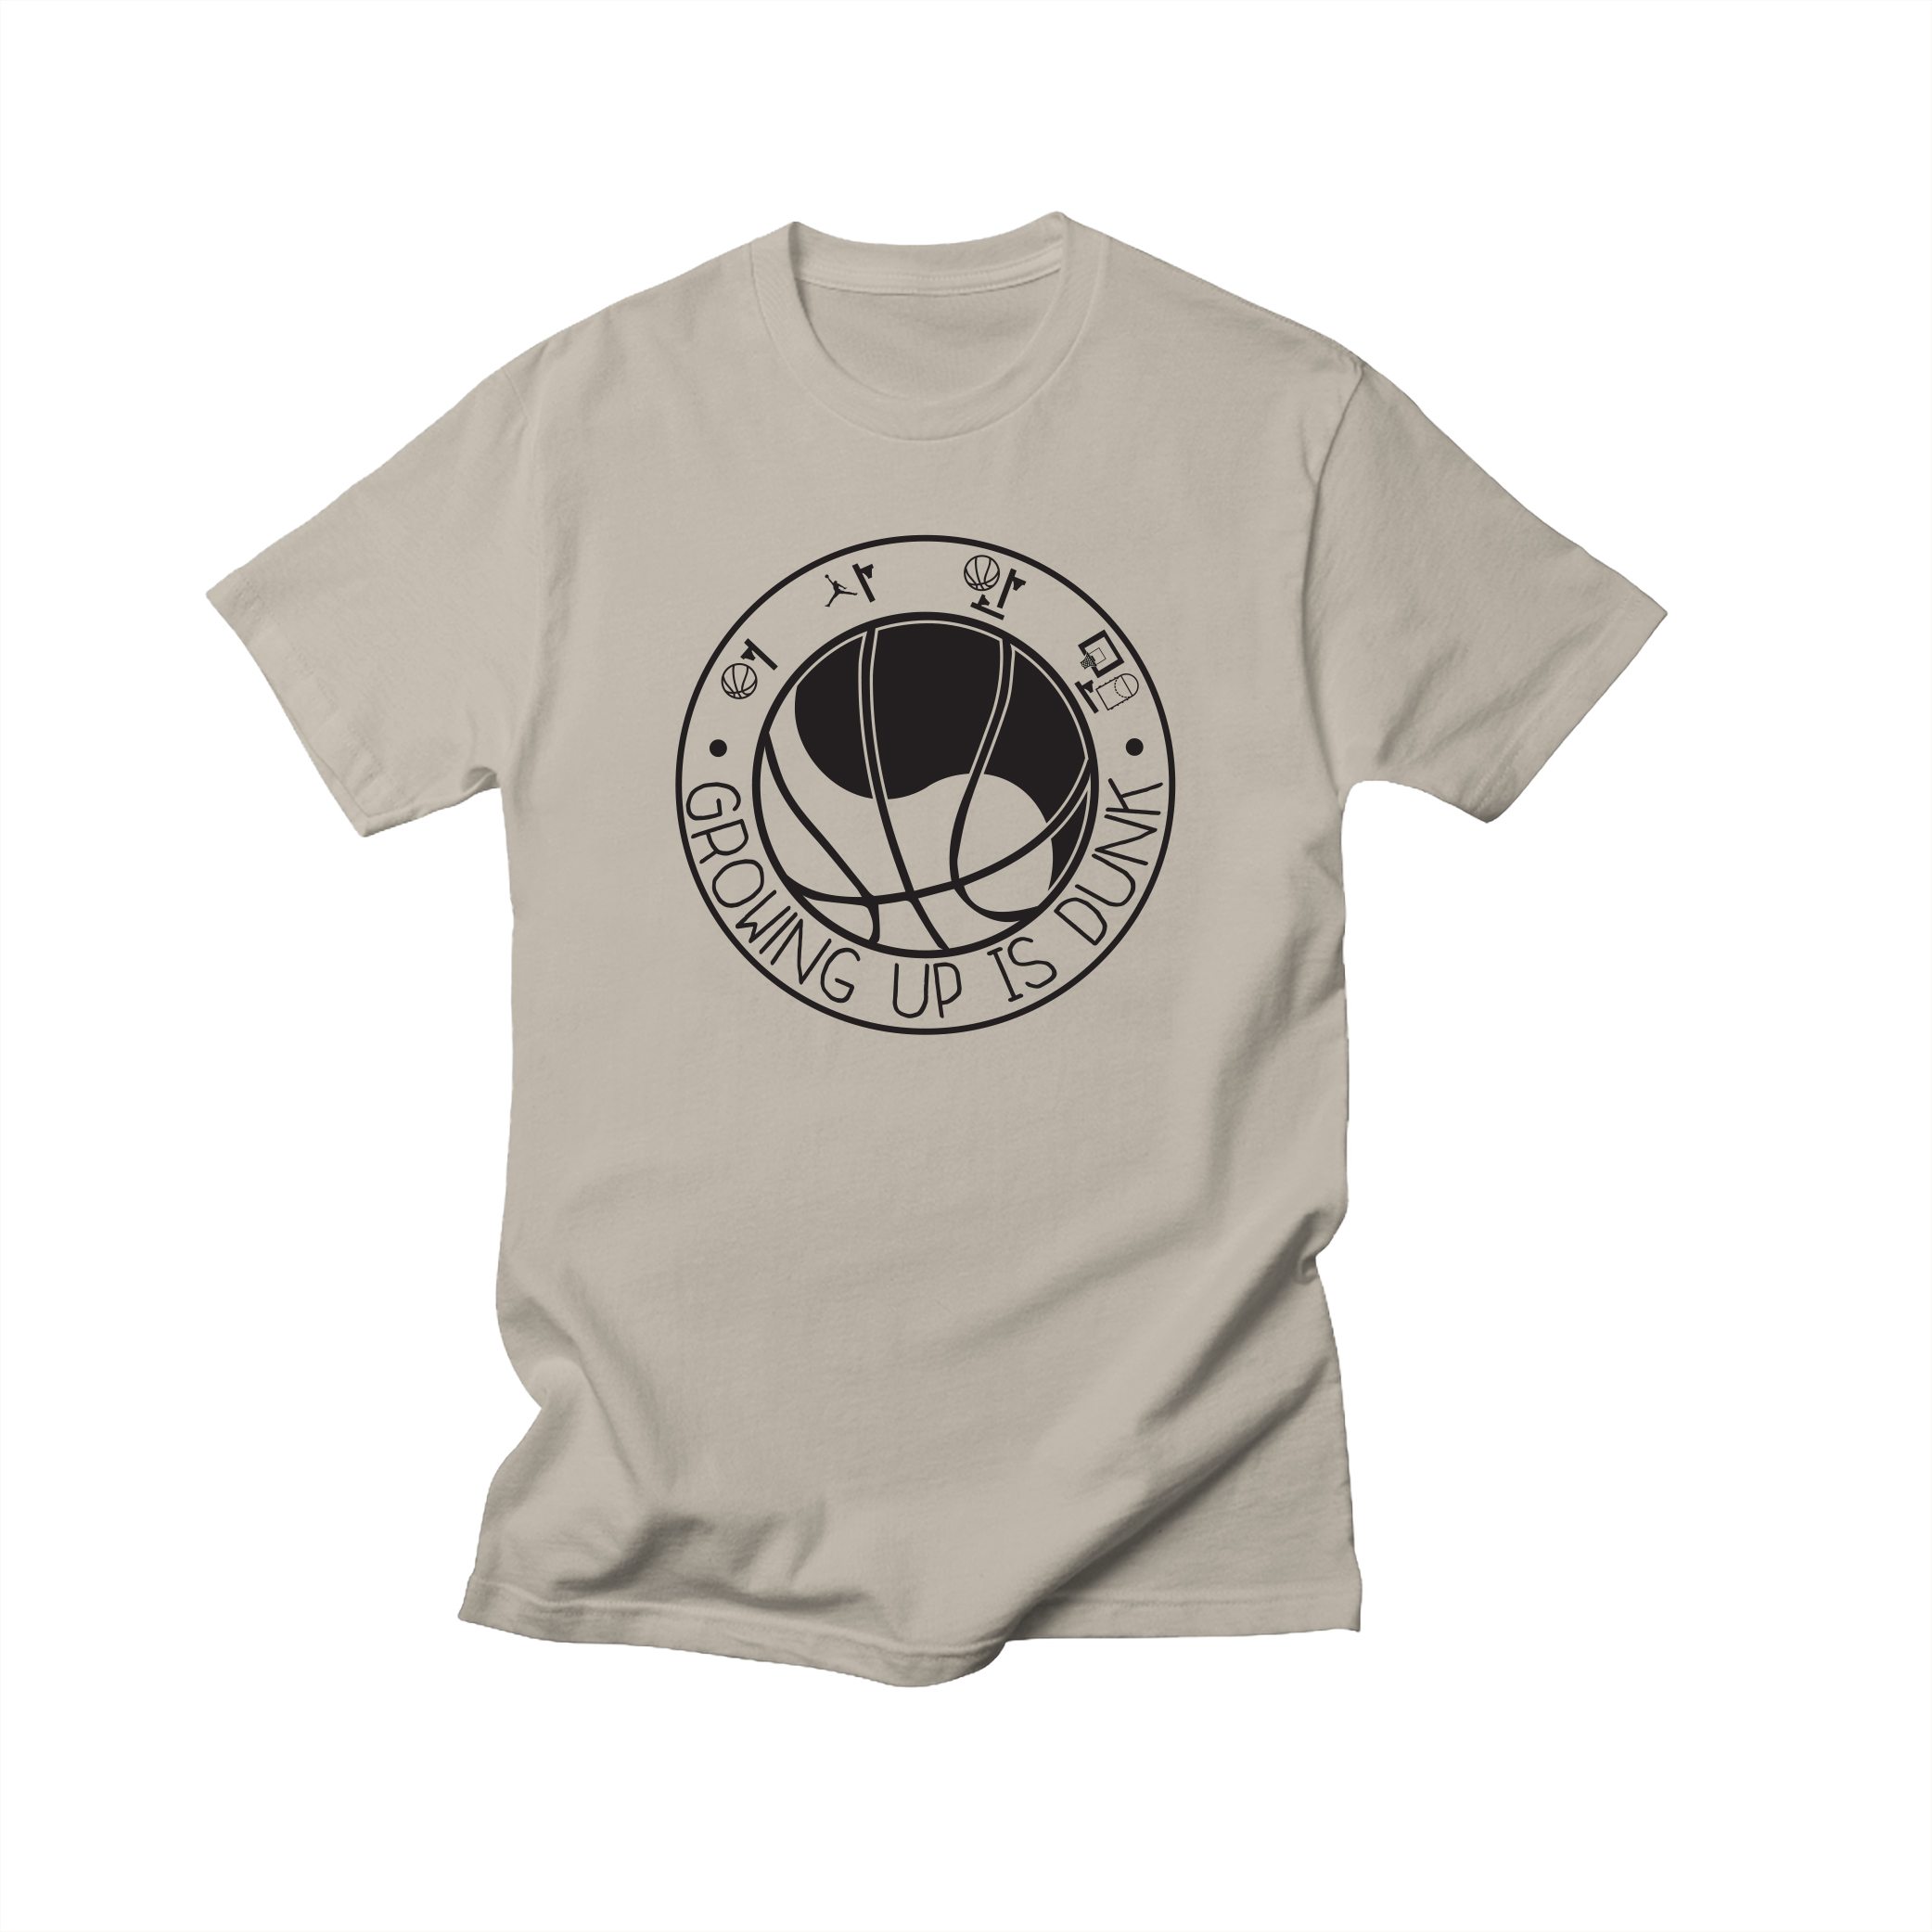 Growing Up Is Dunk Shirt